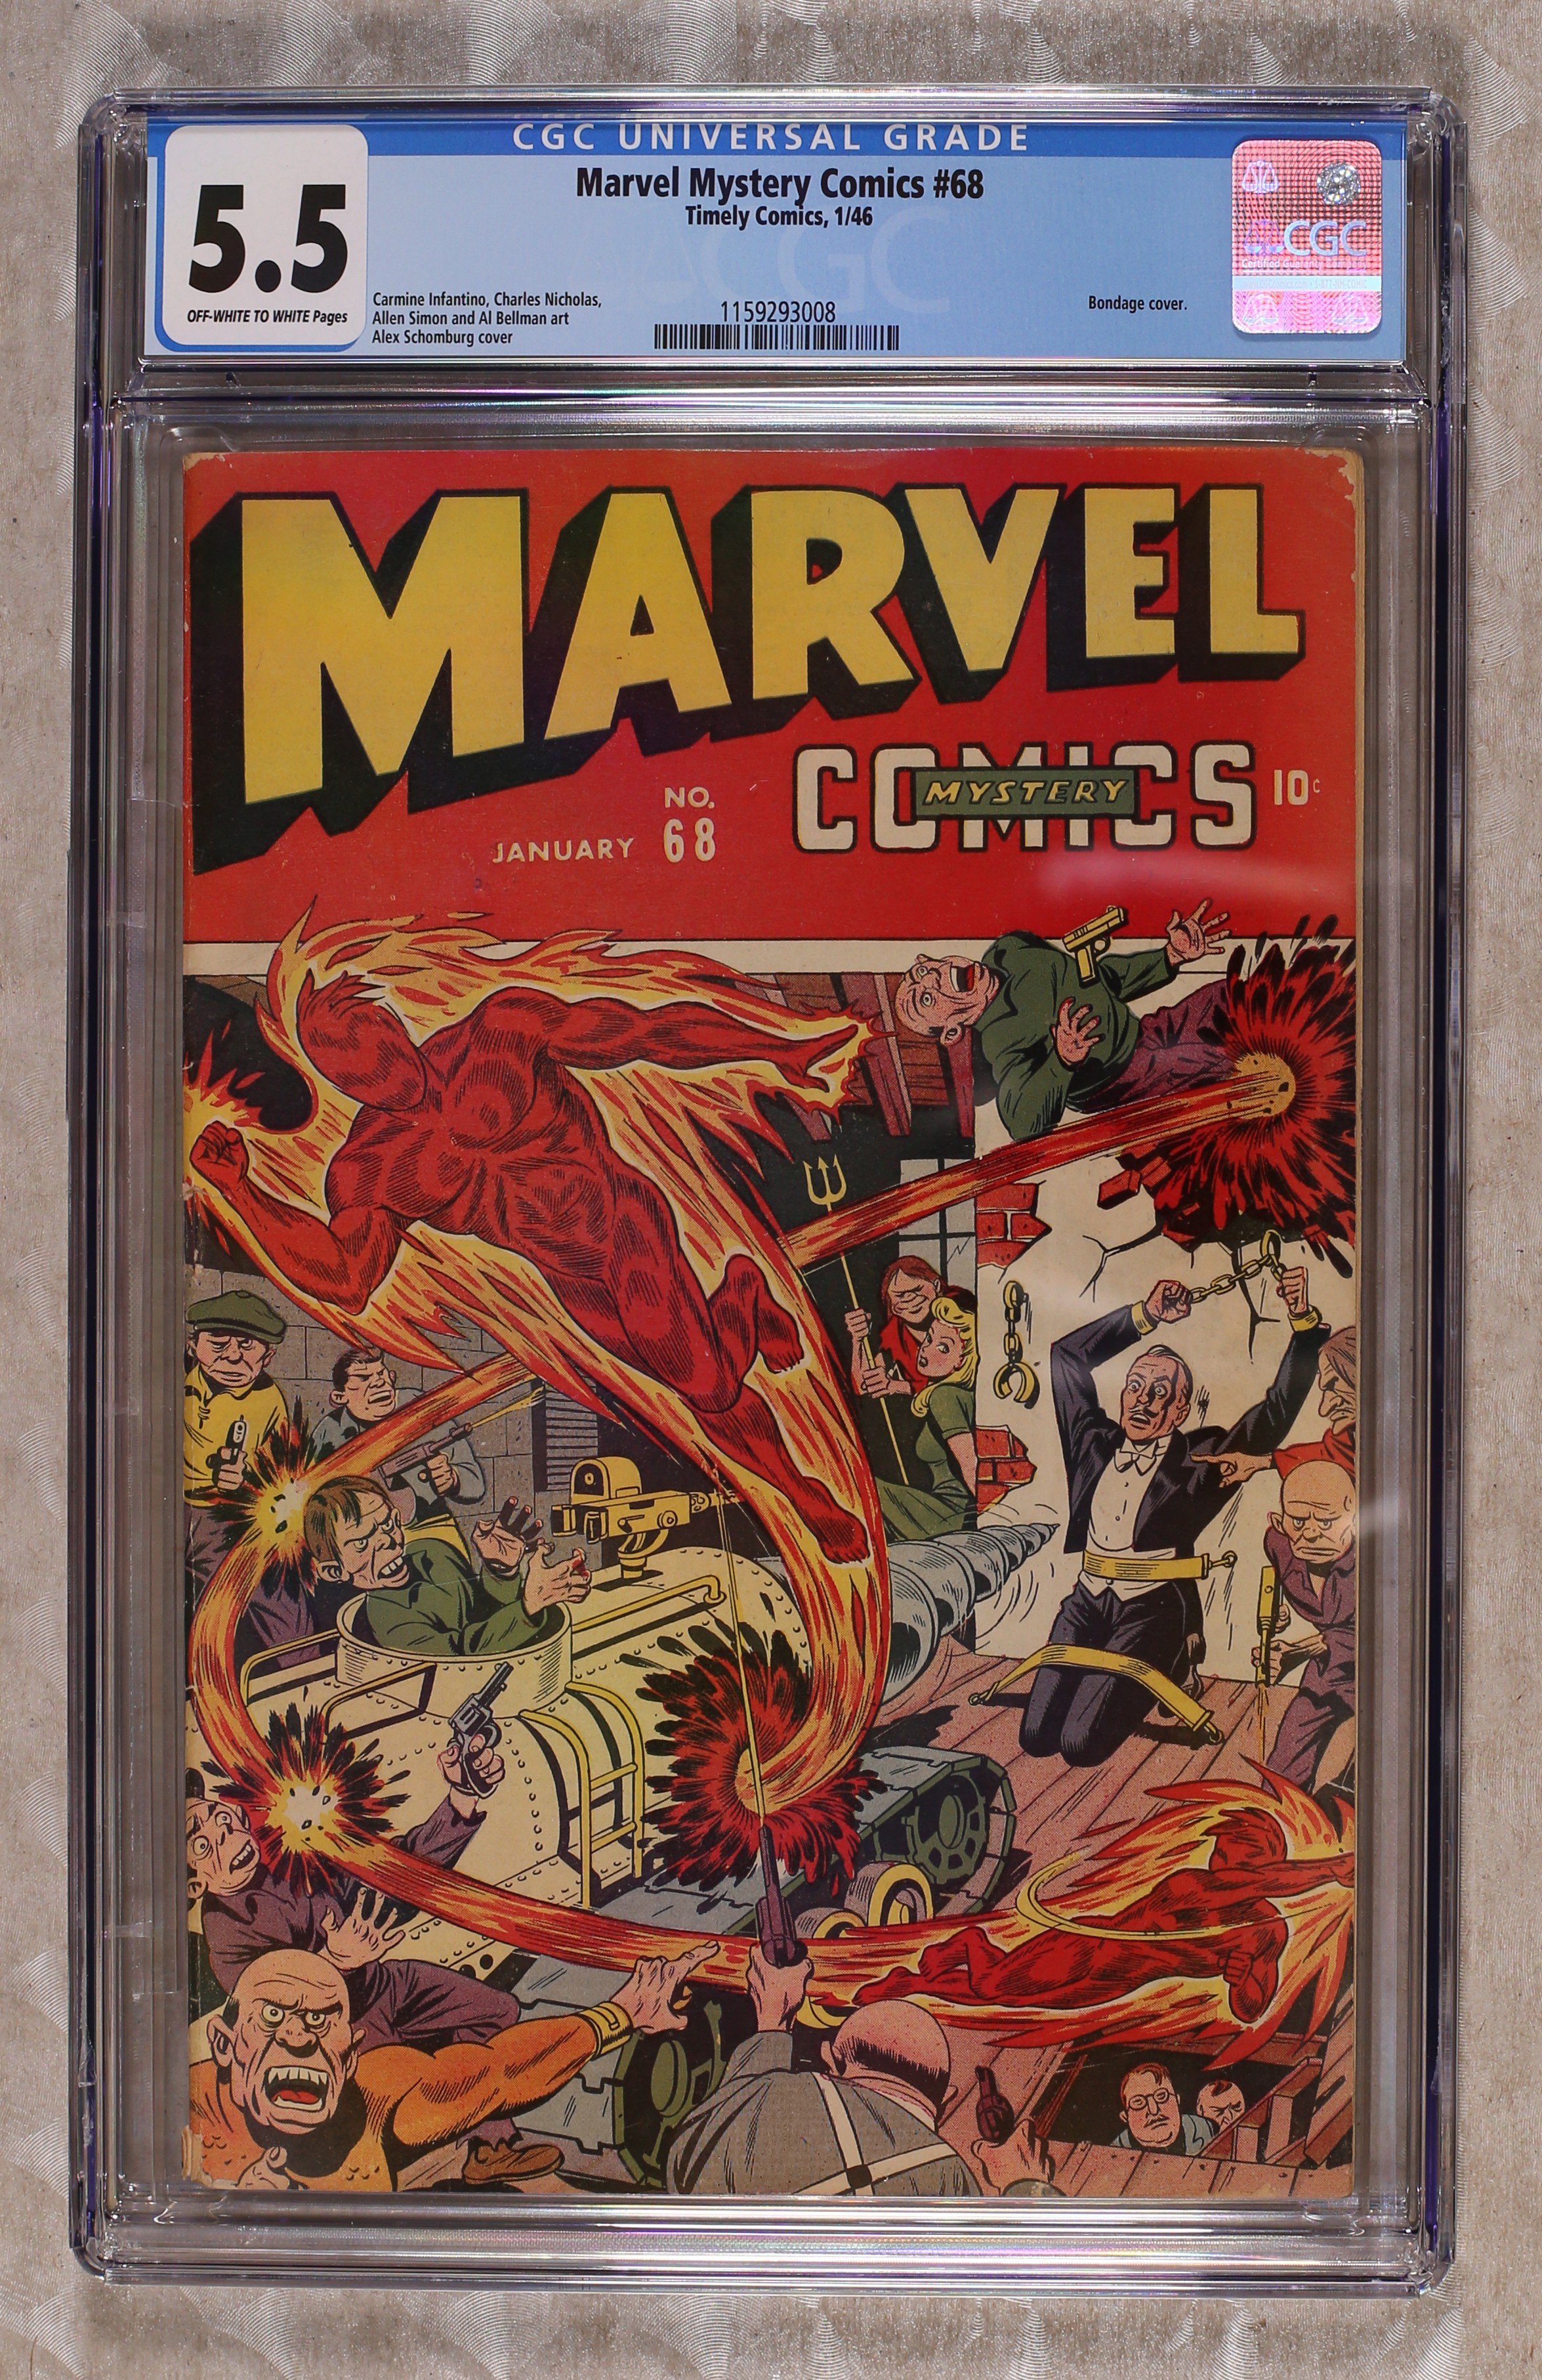 Marvel Mystery Comics comic books graded by CGC